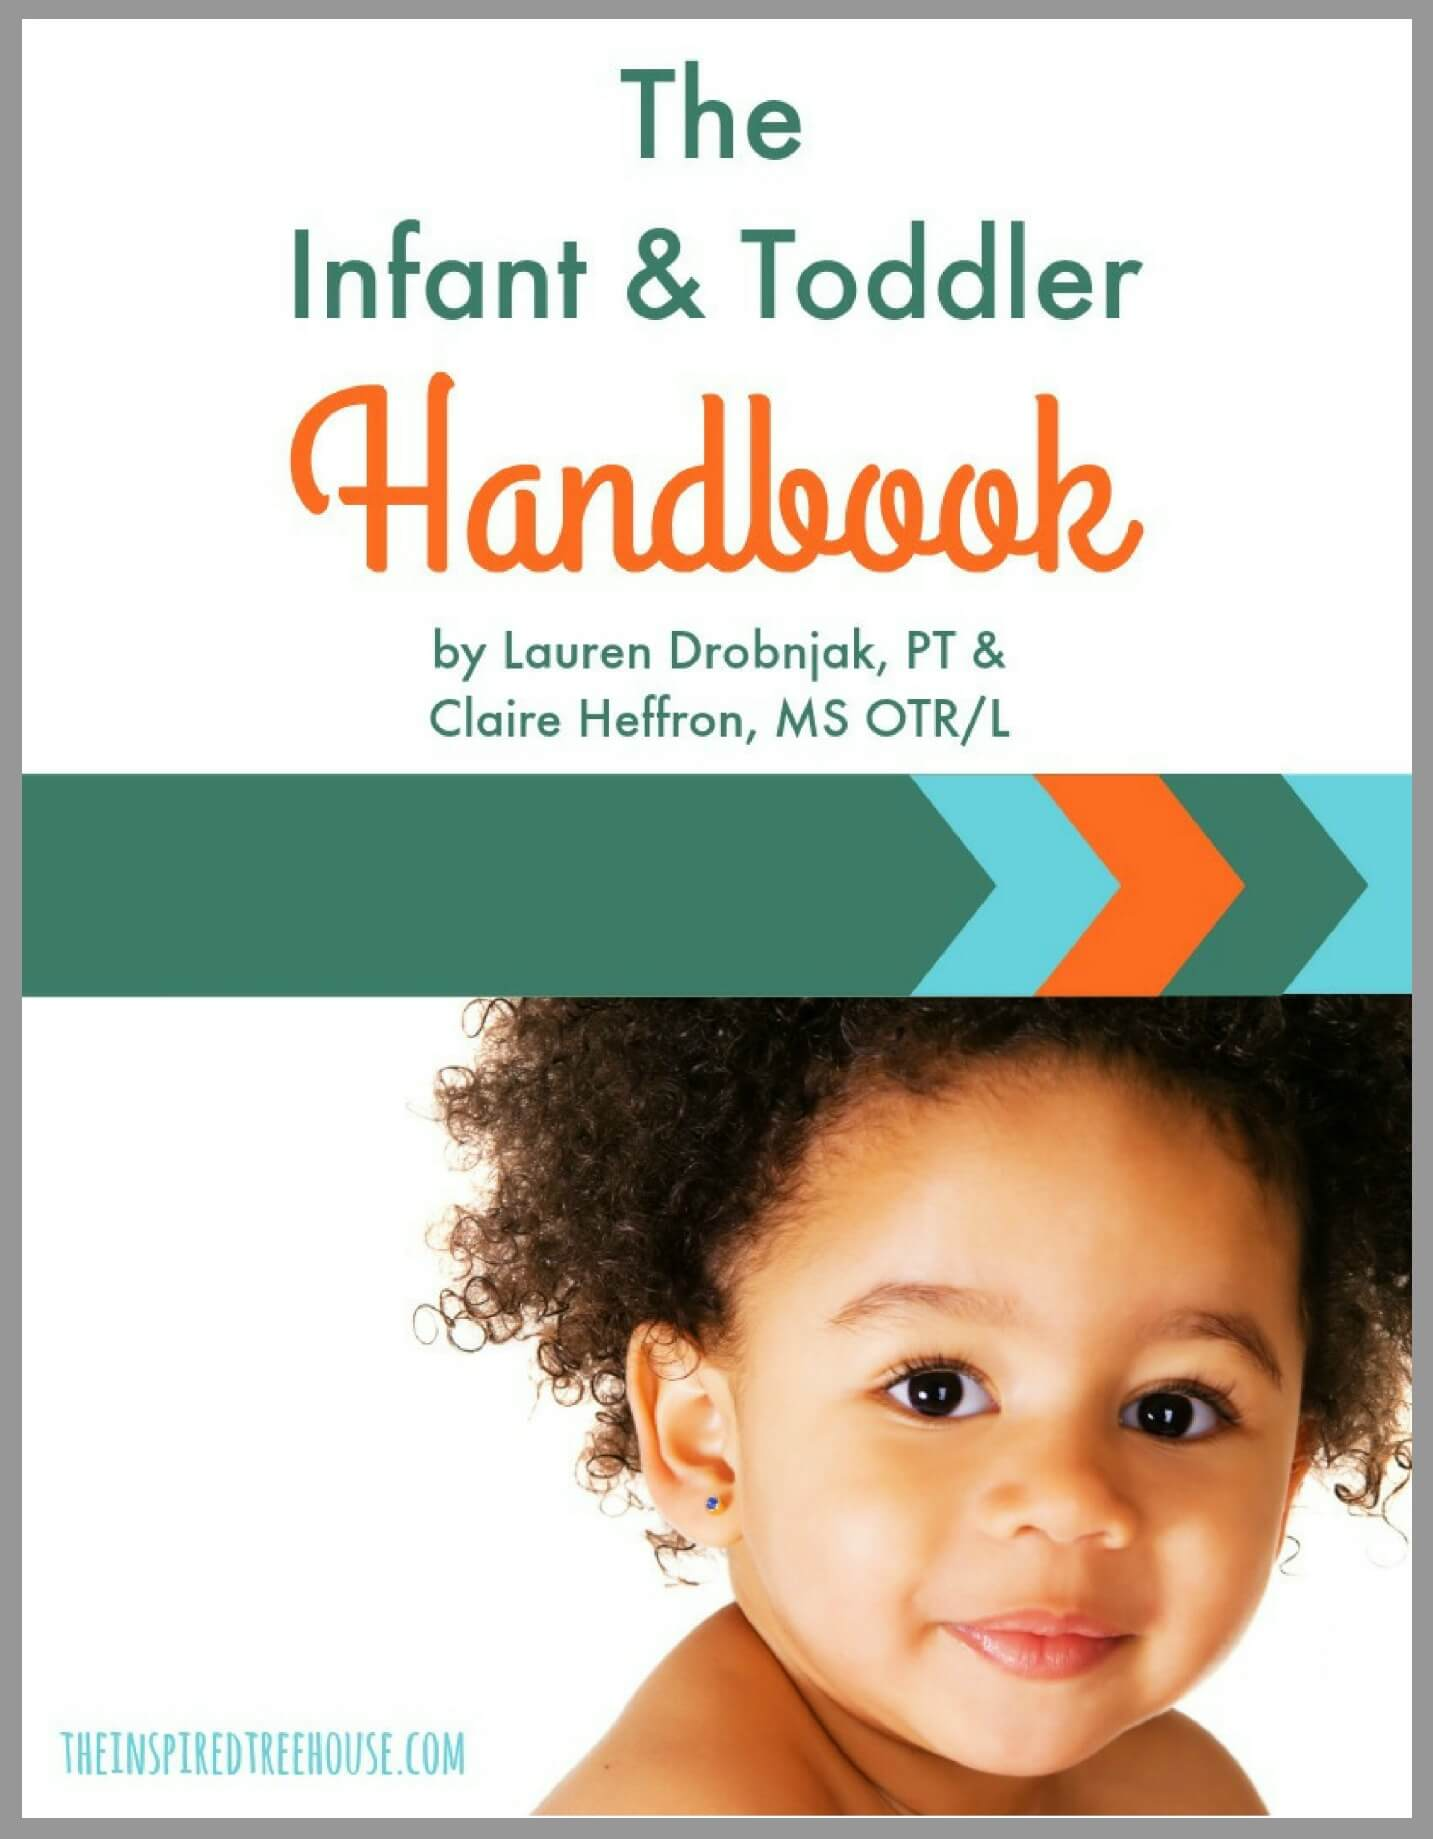 Infant Toddler Handbook